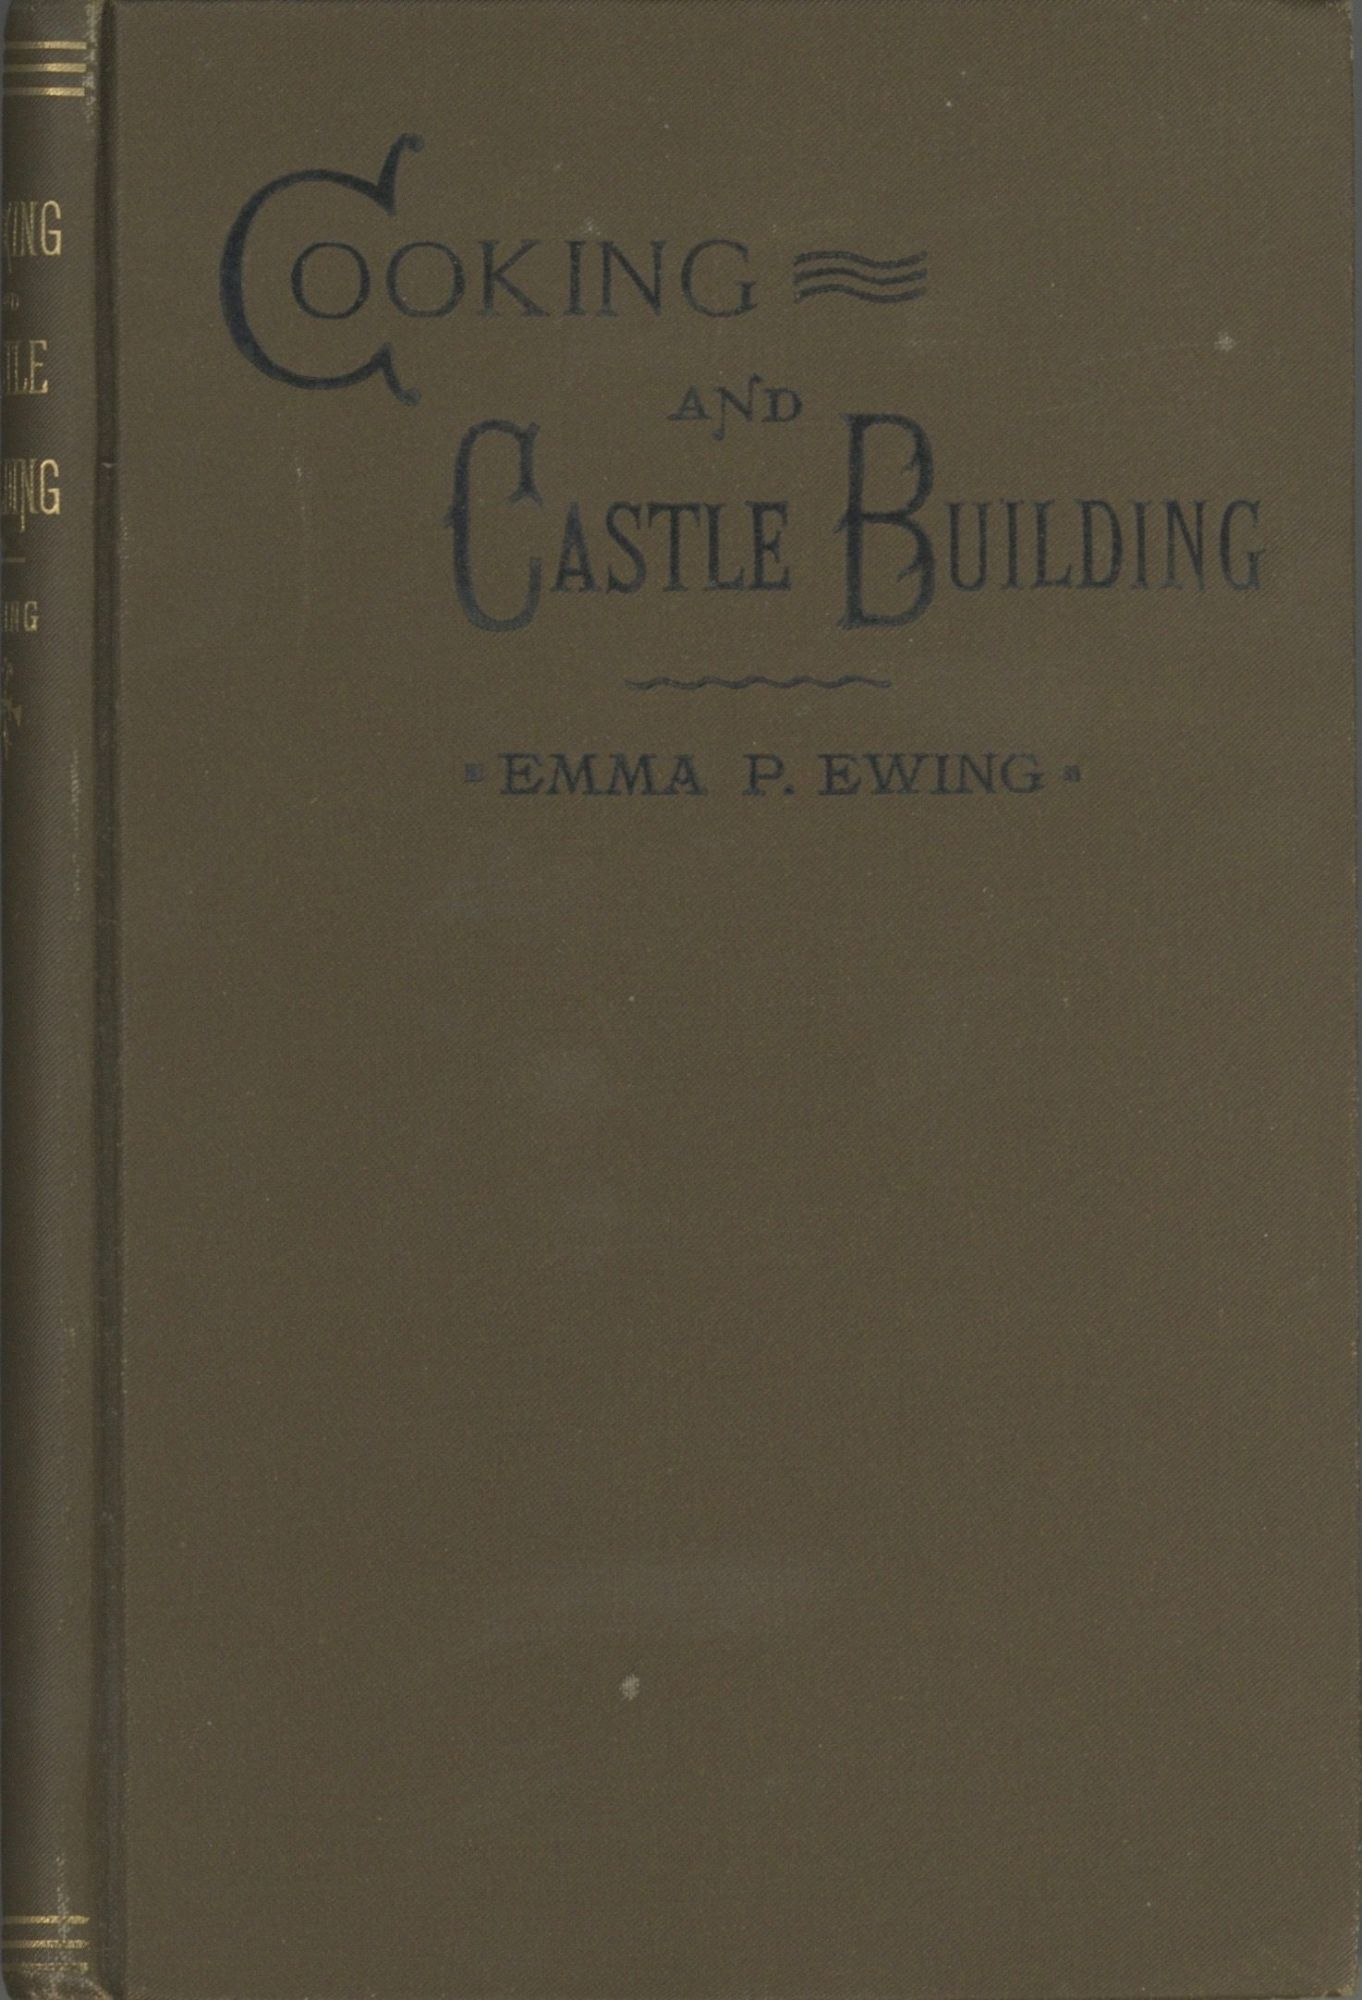 Cooking and Castle Building. Emma P. Ewing.